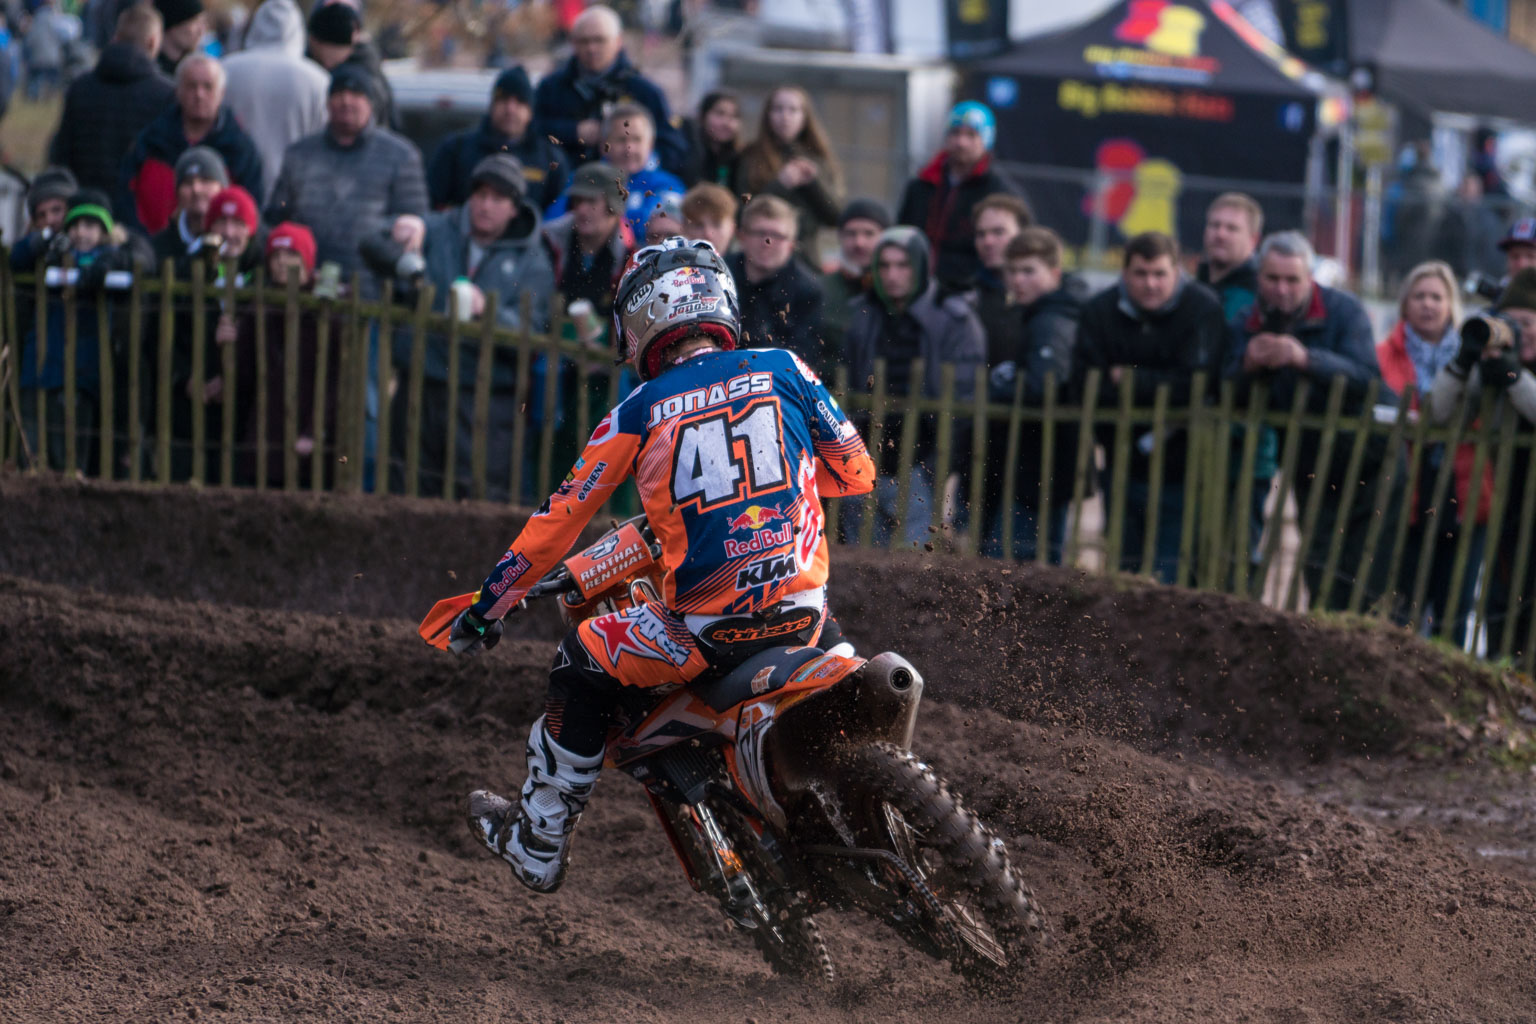 Jonass was the dominant force in MX2